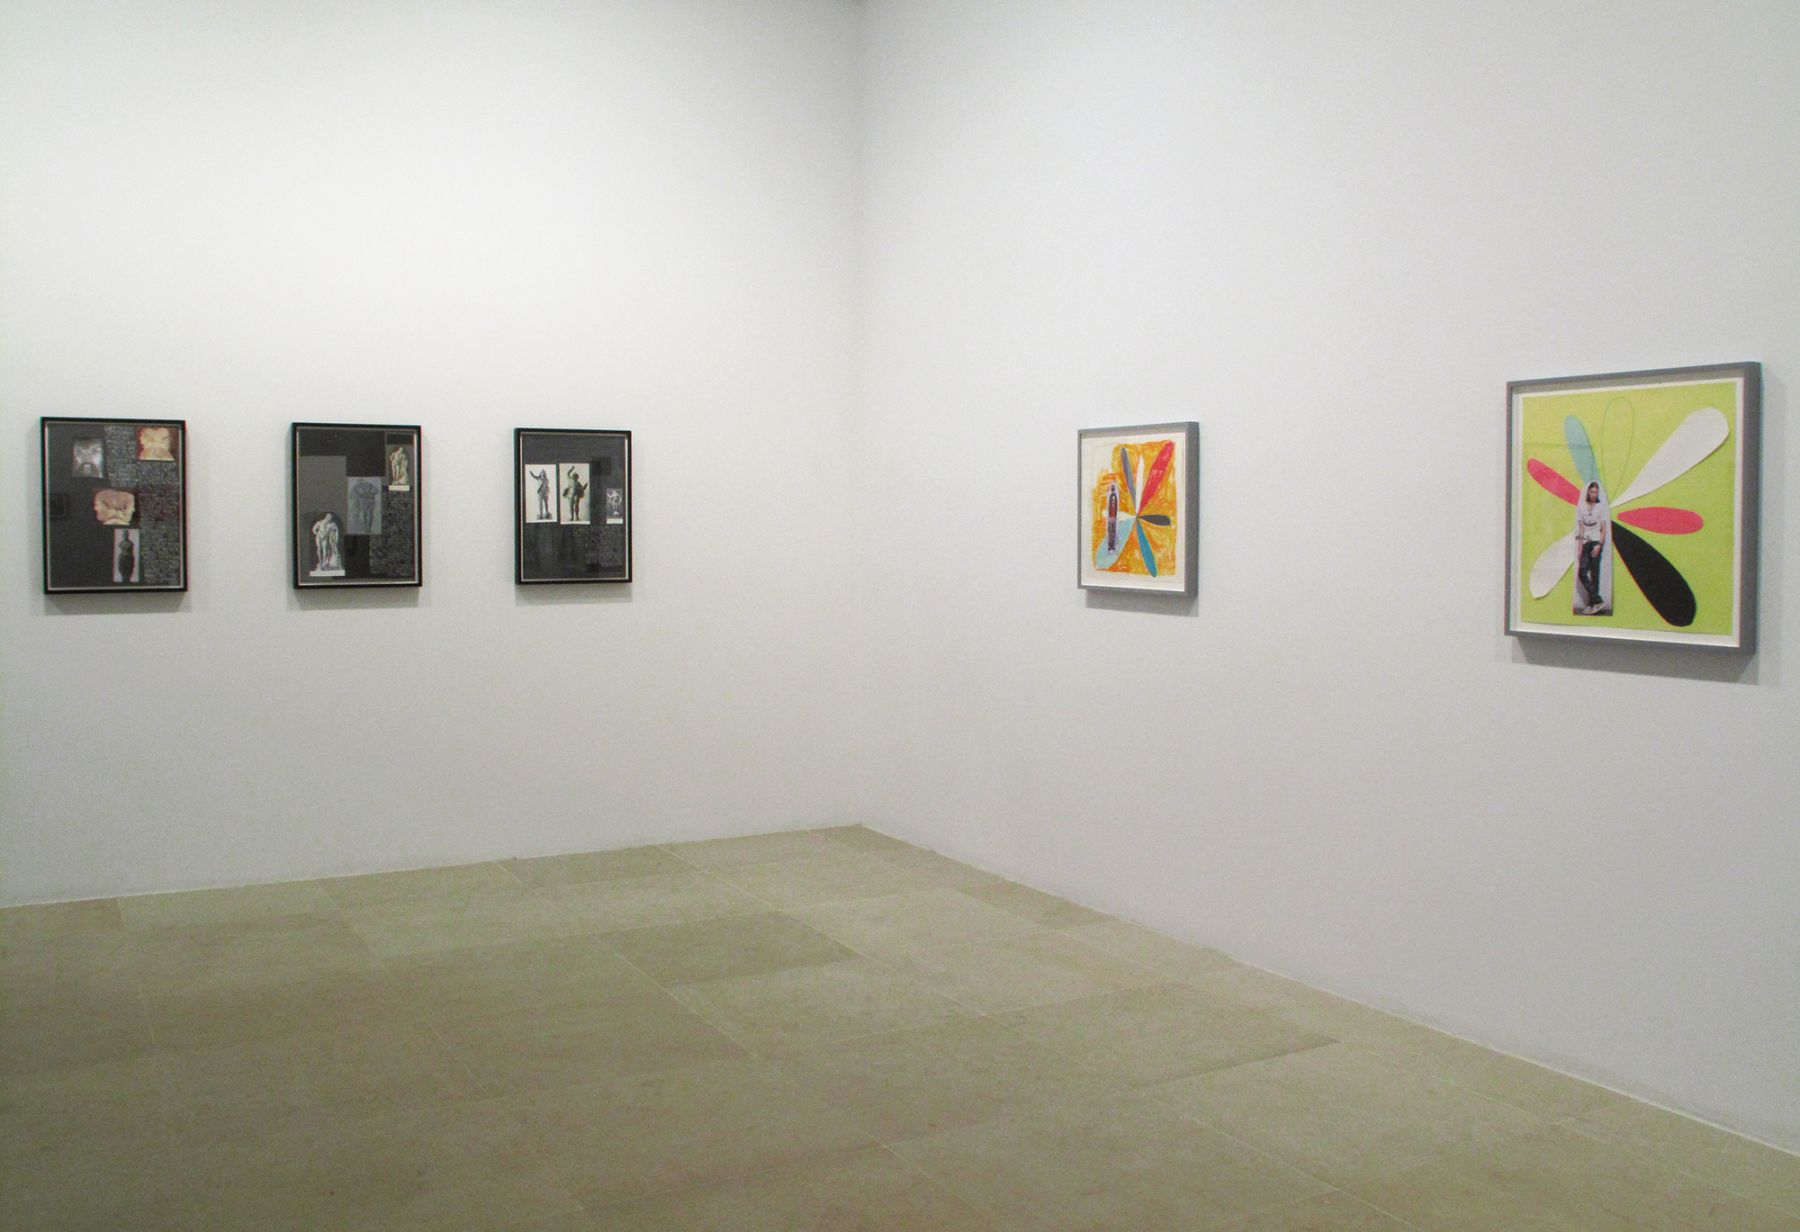 Richard Hawkins, Installation view, Greene Naftali, New York, 2009